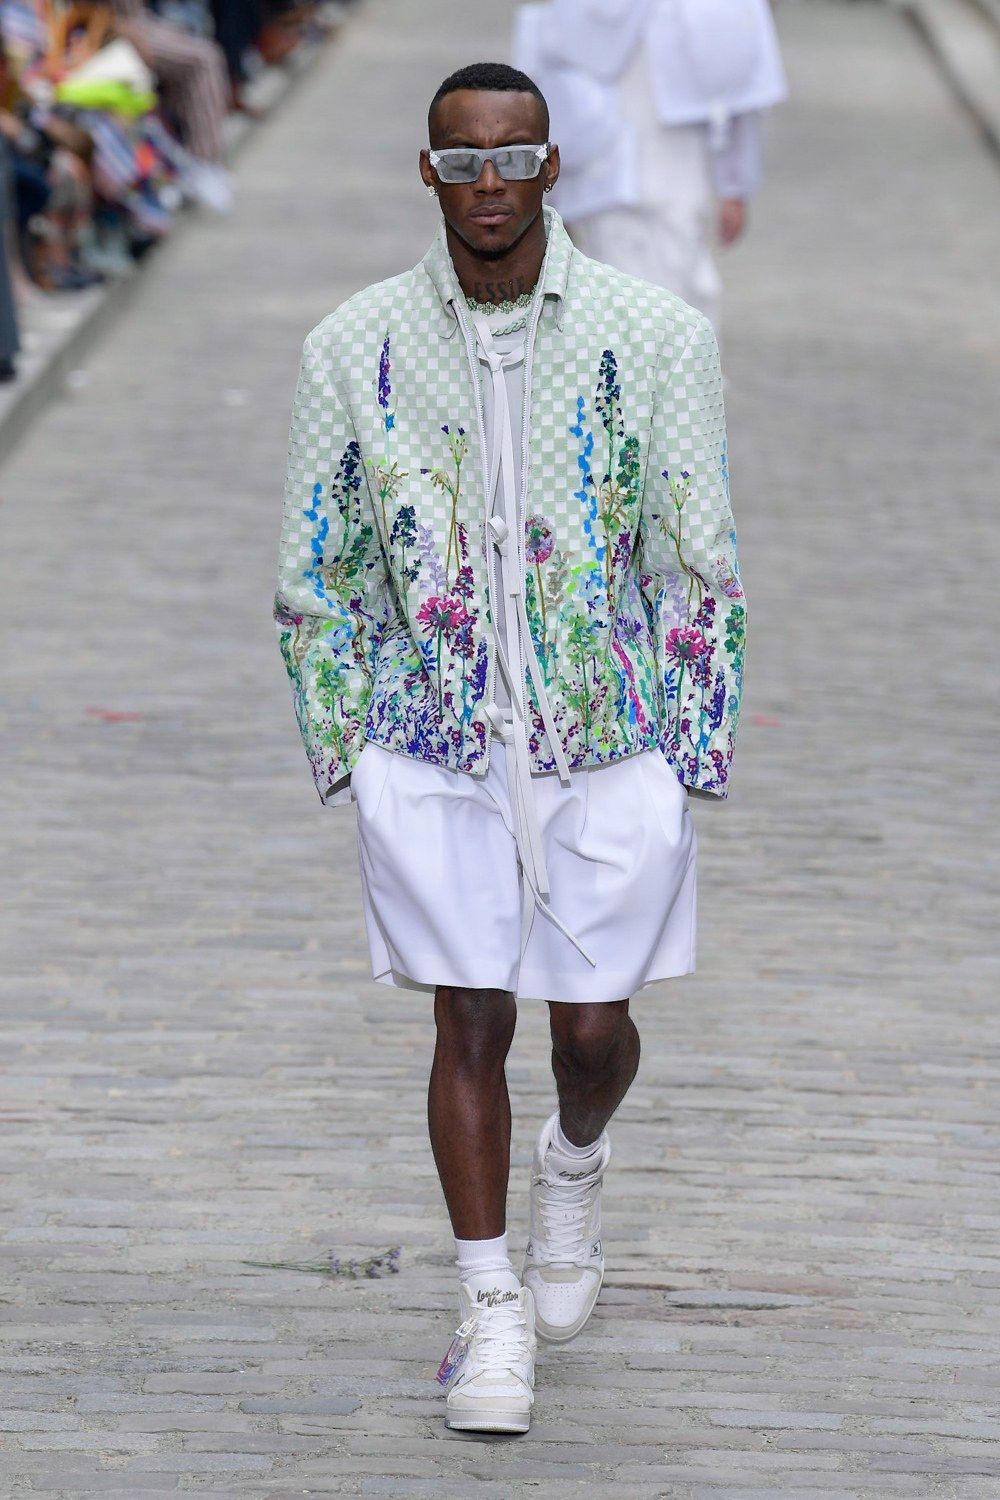 Mens Summer Fashion 2020.Frestyle Fashion Blog Styling Inspiration For Men